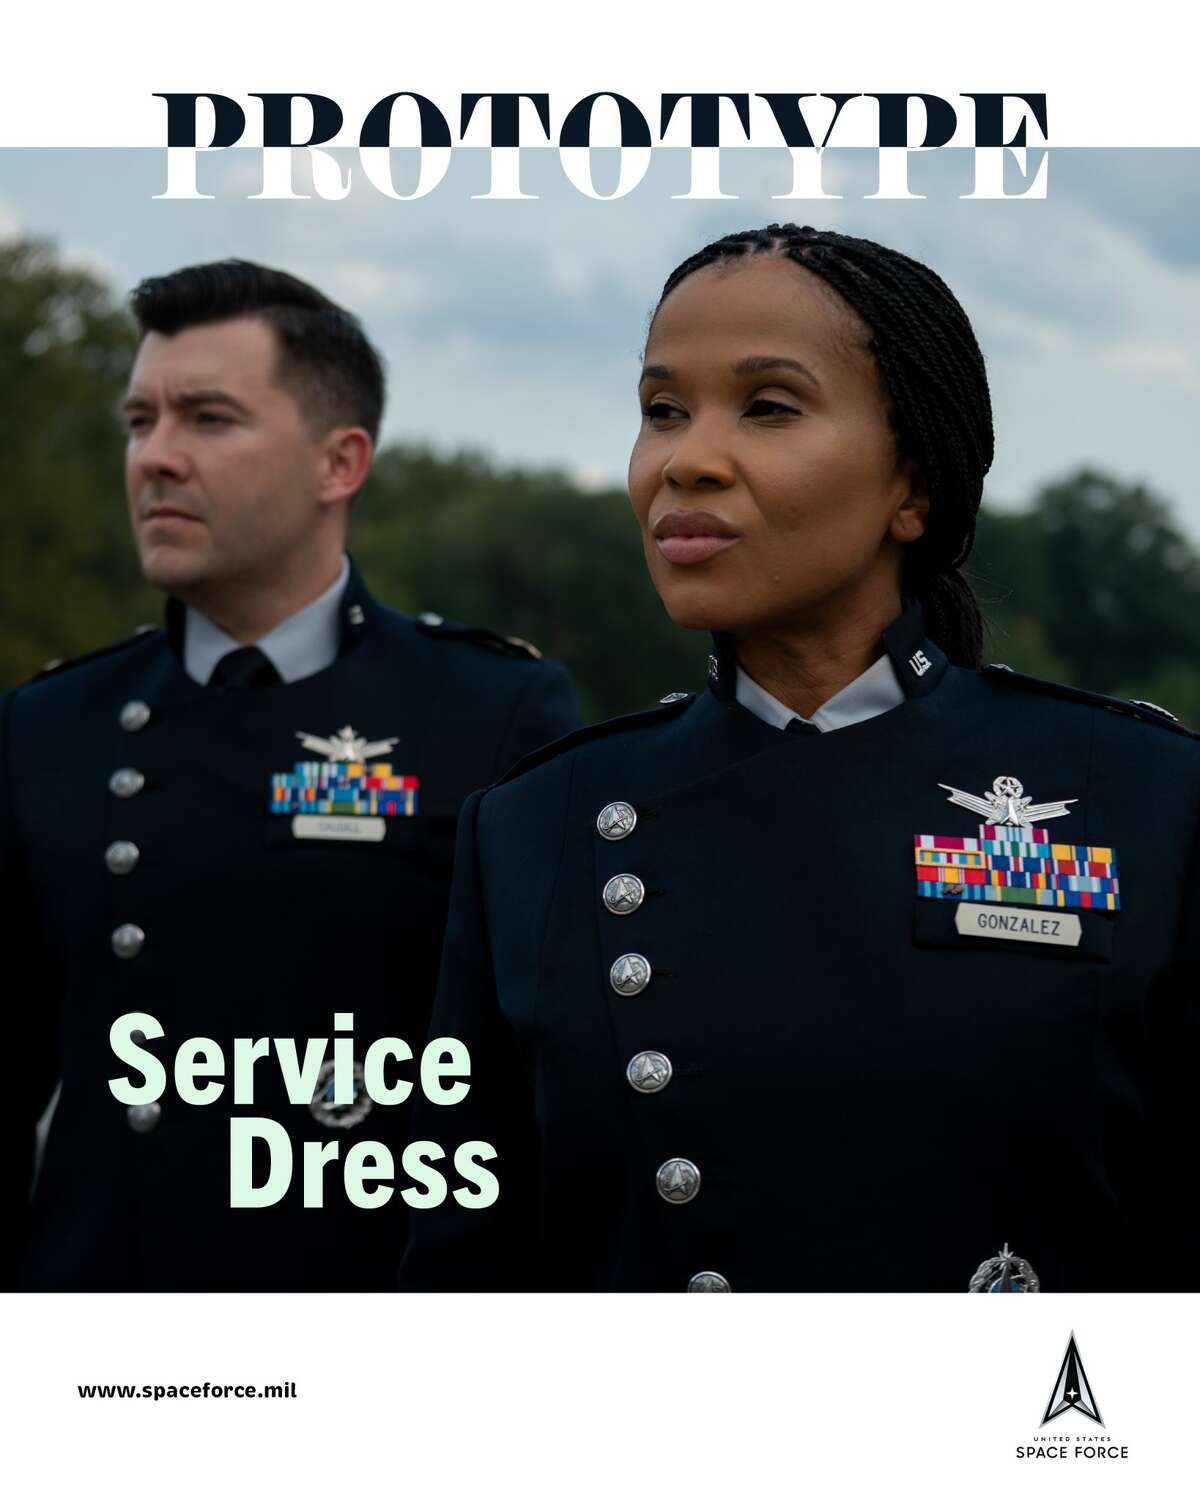 The Space Force unveiled a uniform prototype on Wednesday, Sept. 22, 2021.